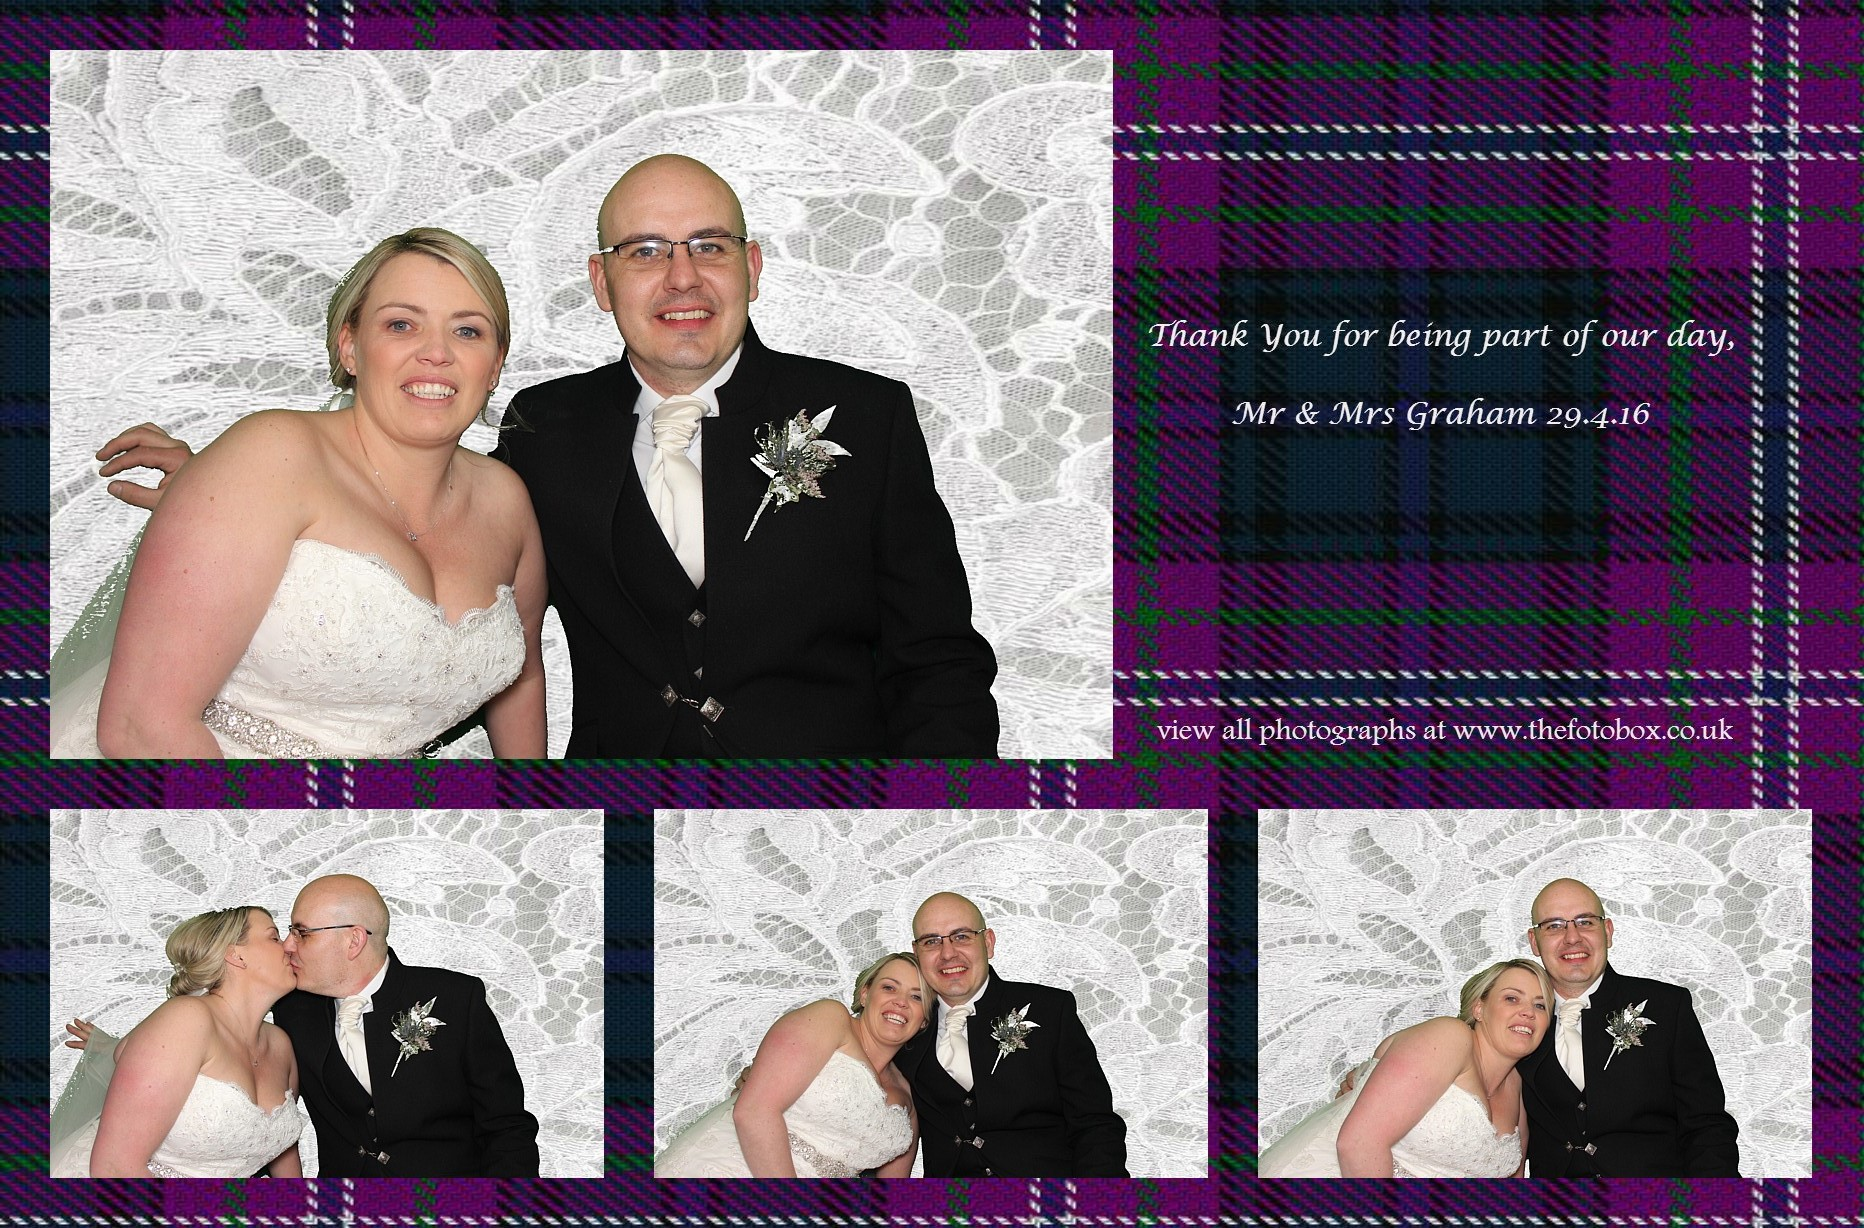 testimonials photo booth hire glasgow, edinburgh, loch lomond, ayrshire, dundee, perth, stirling, aberdeen, inverness, stornoway, highlands, fife, angus